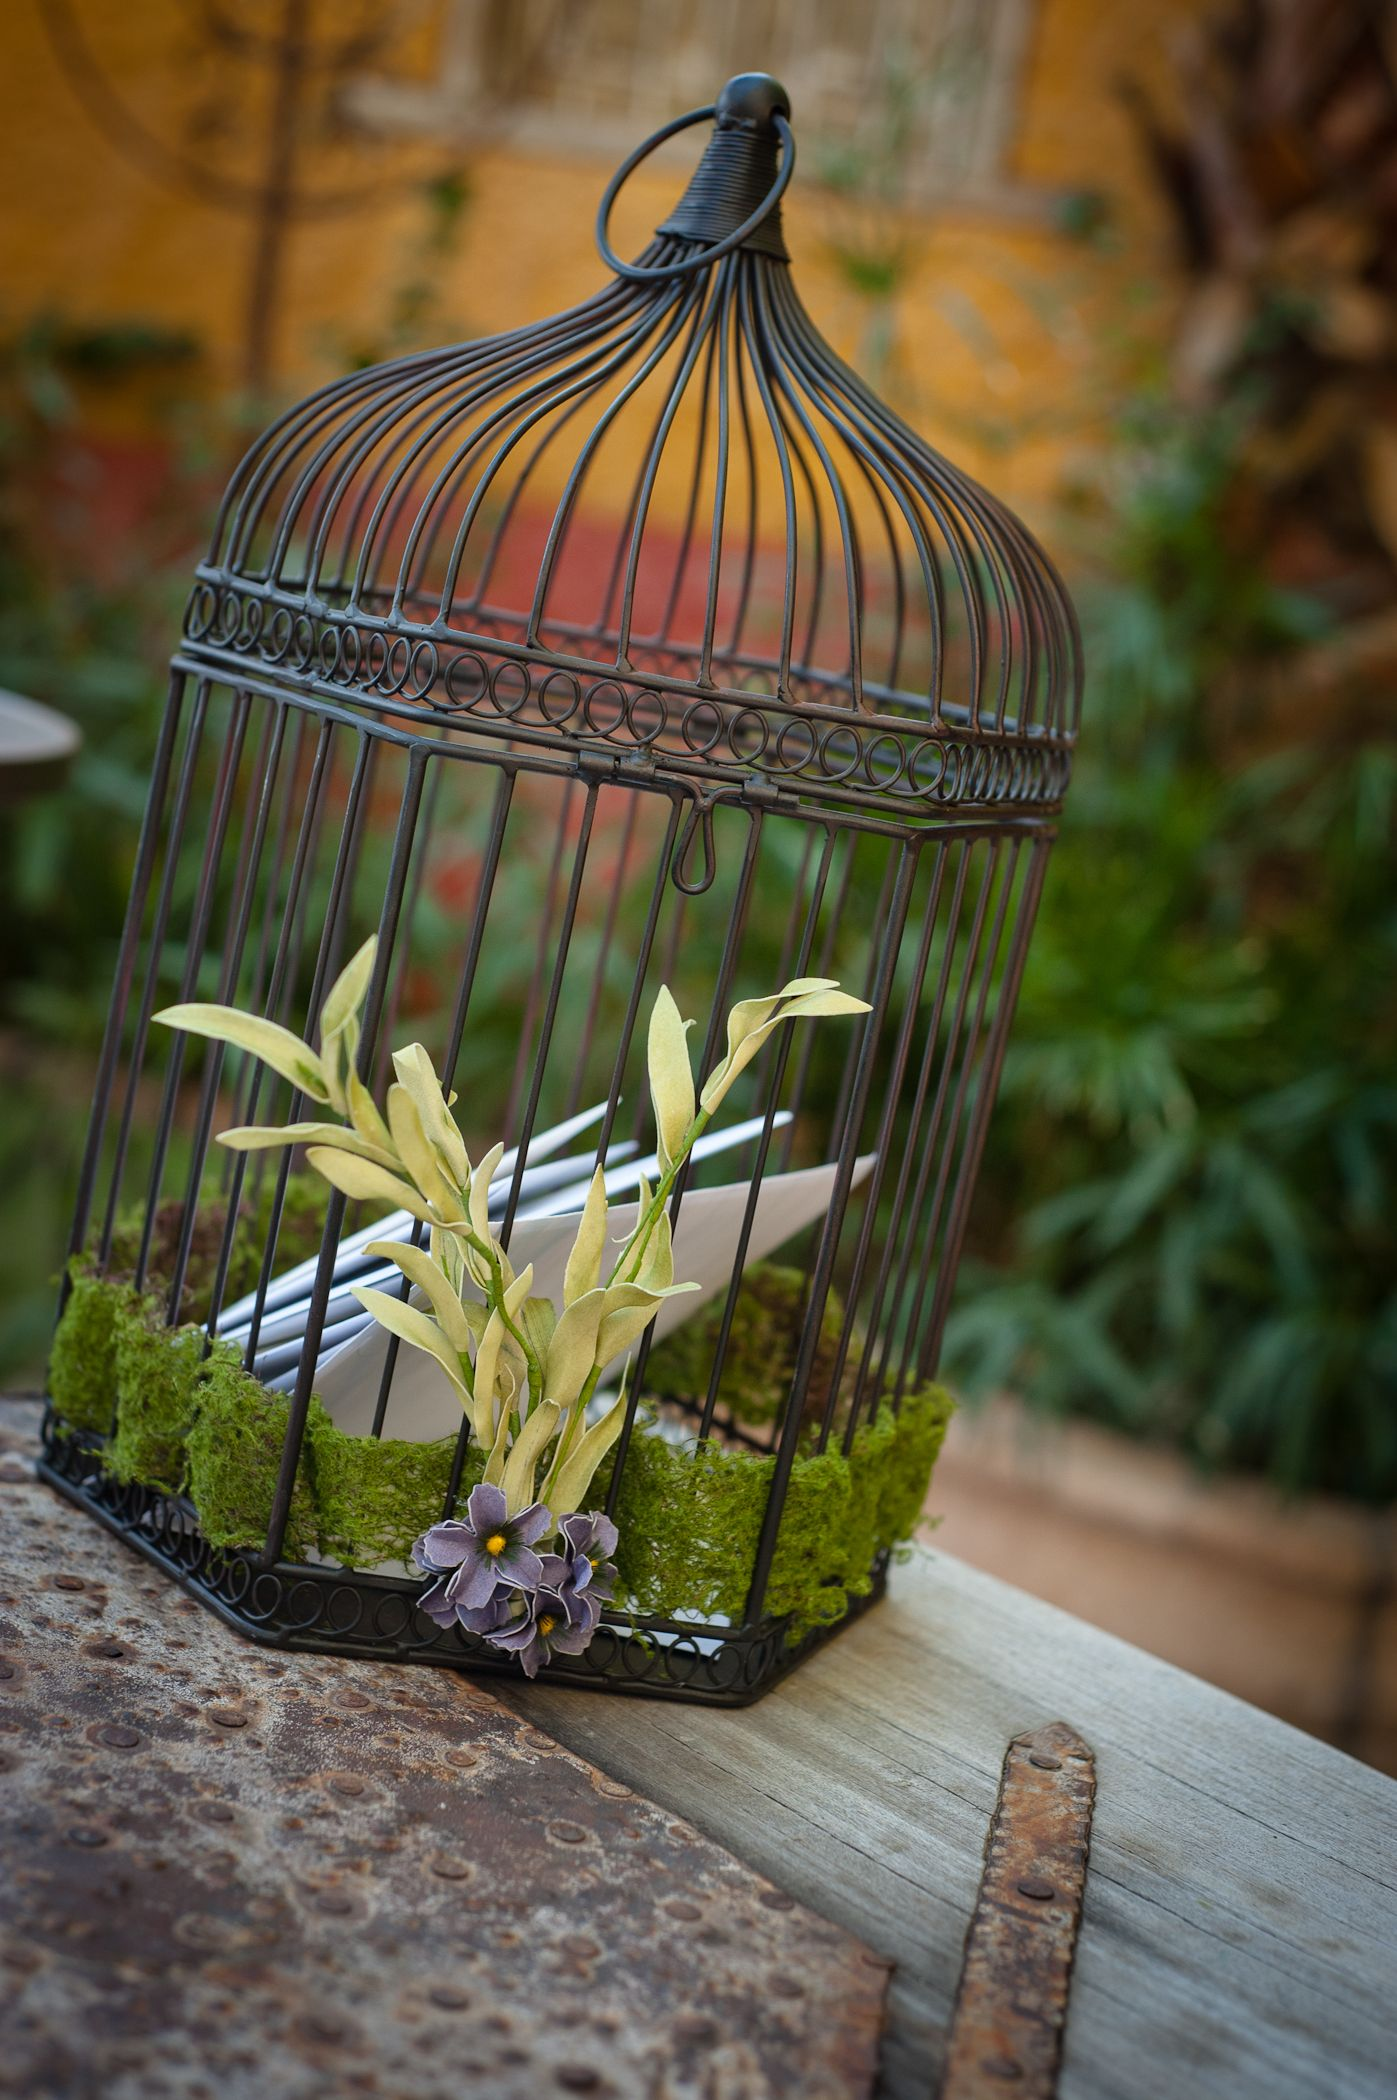 Moss Ribbon Woven Through A Birdcage Added Floral For A Unique